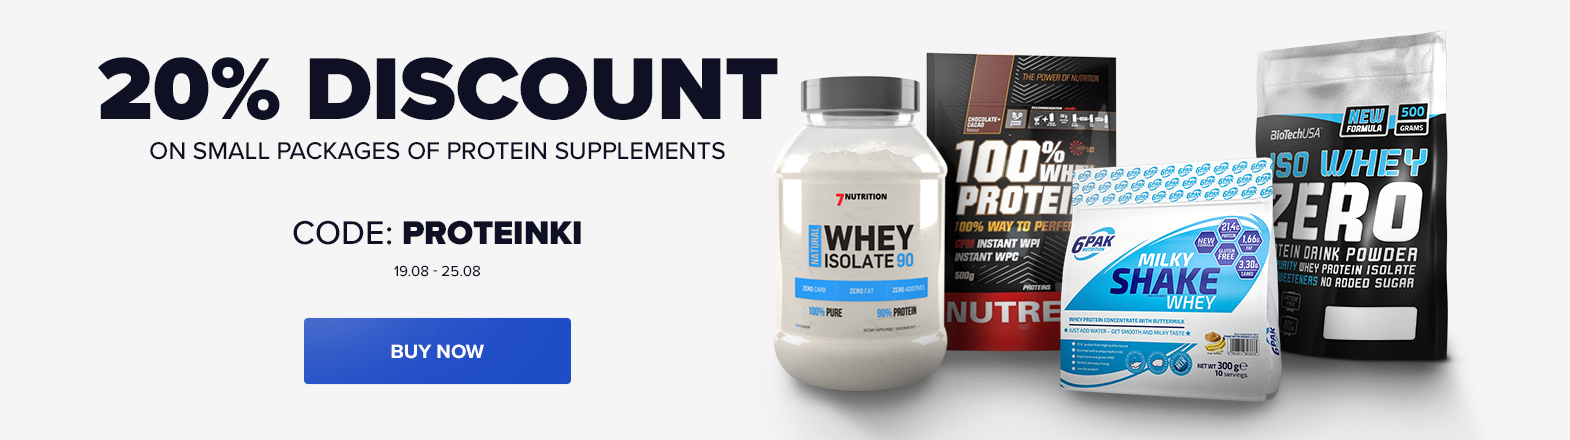 20% discount on small packages of protein supplements